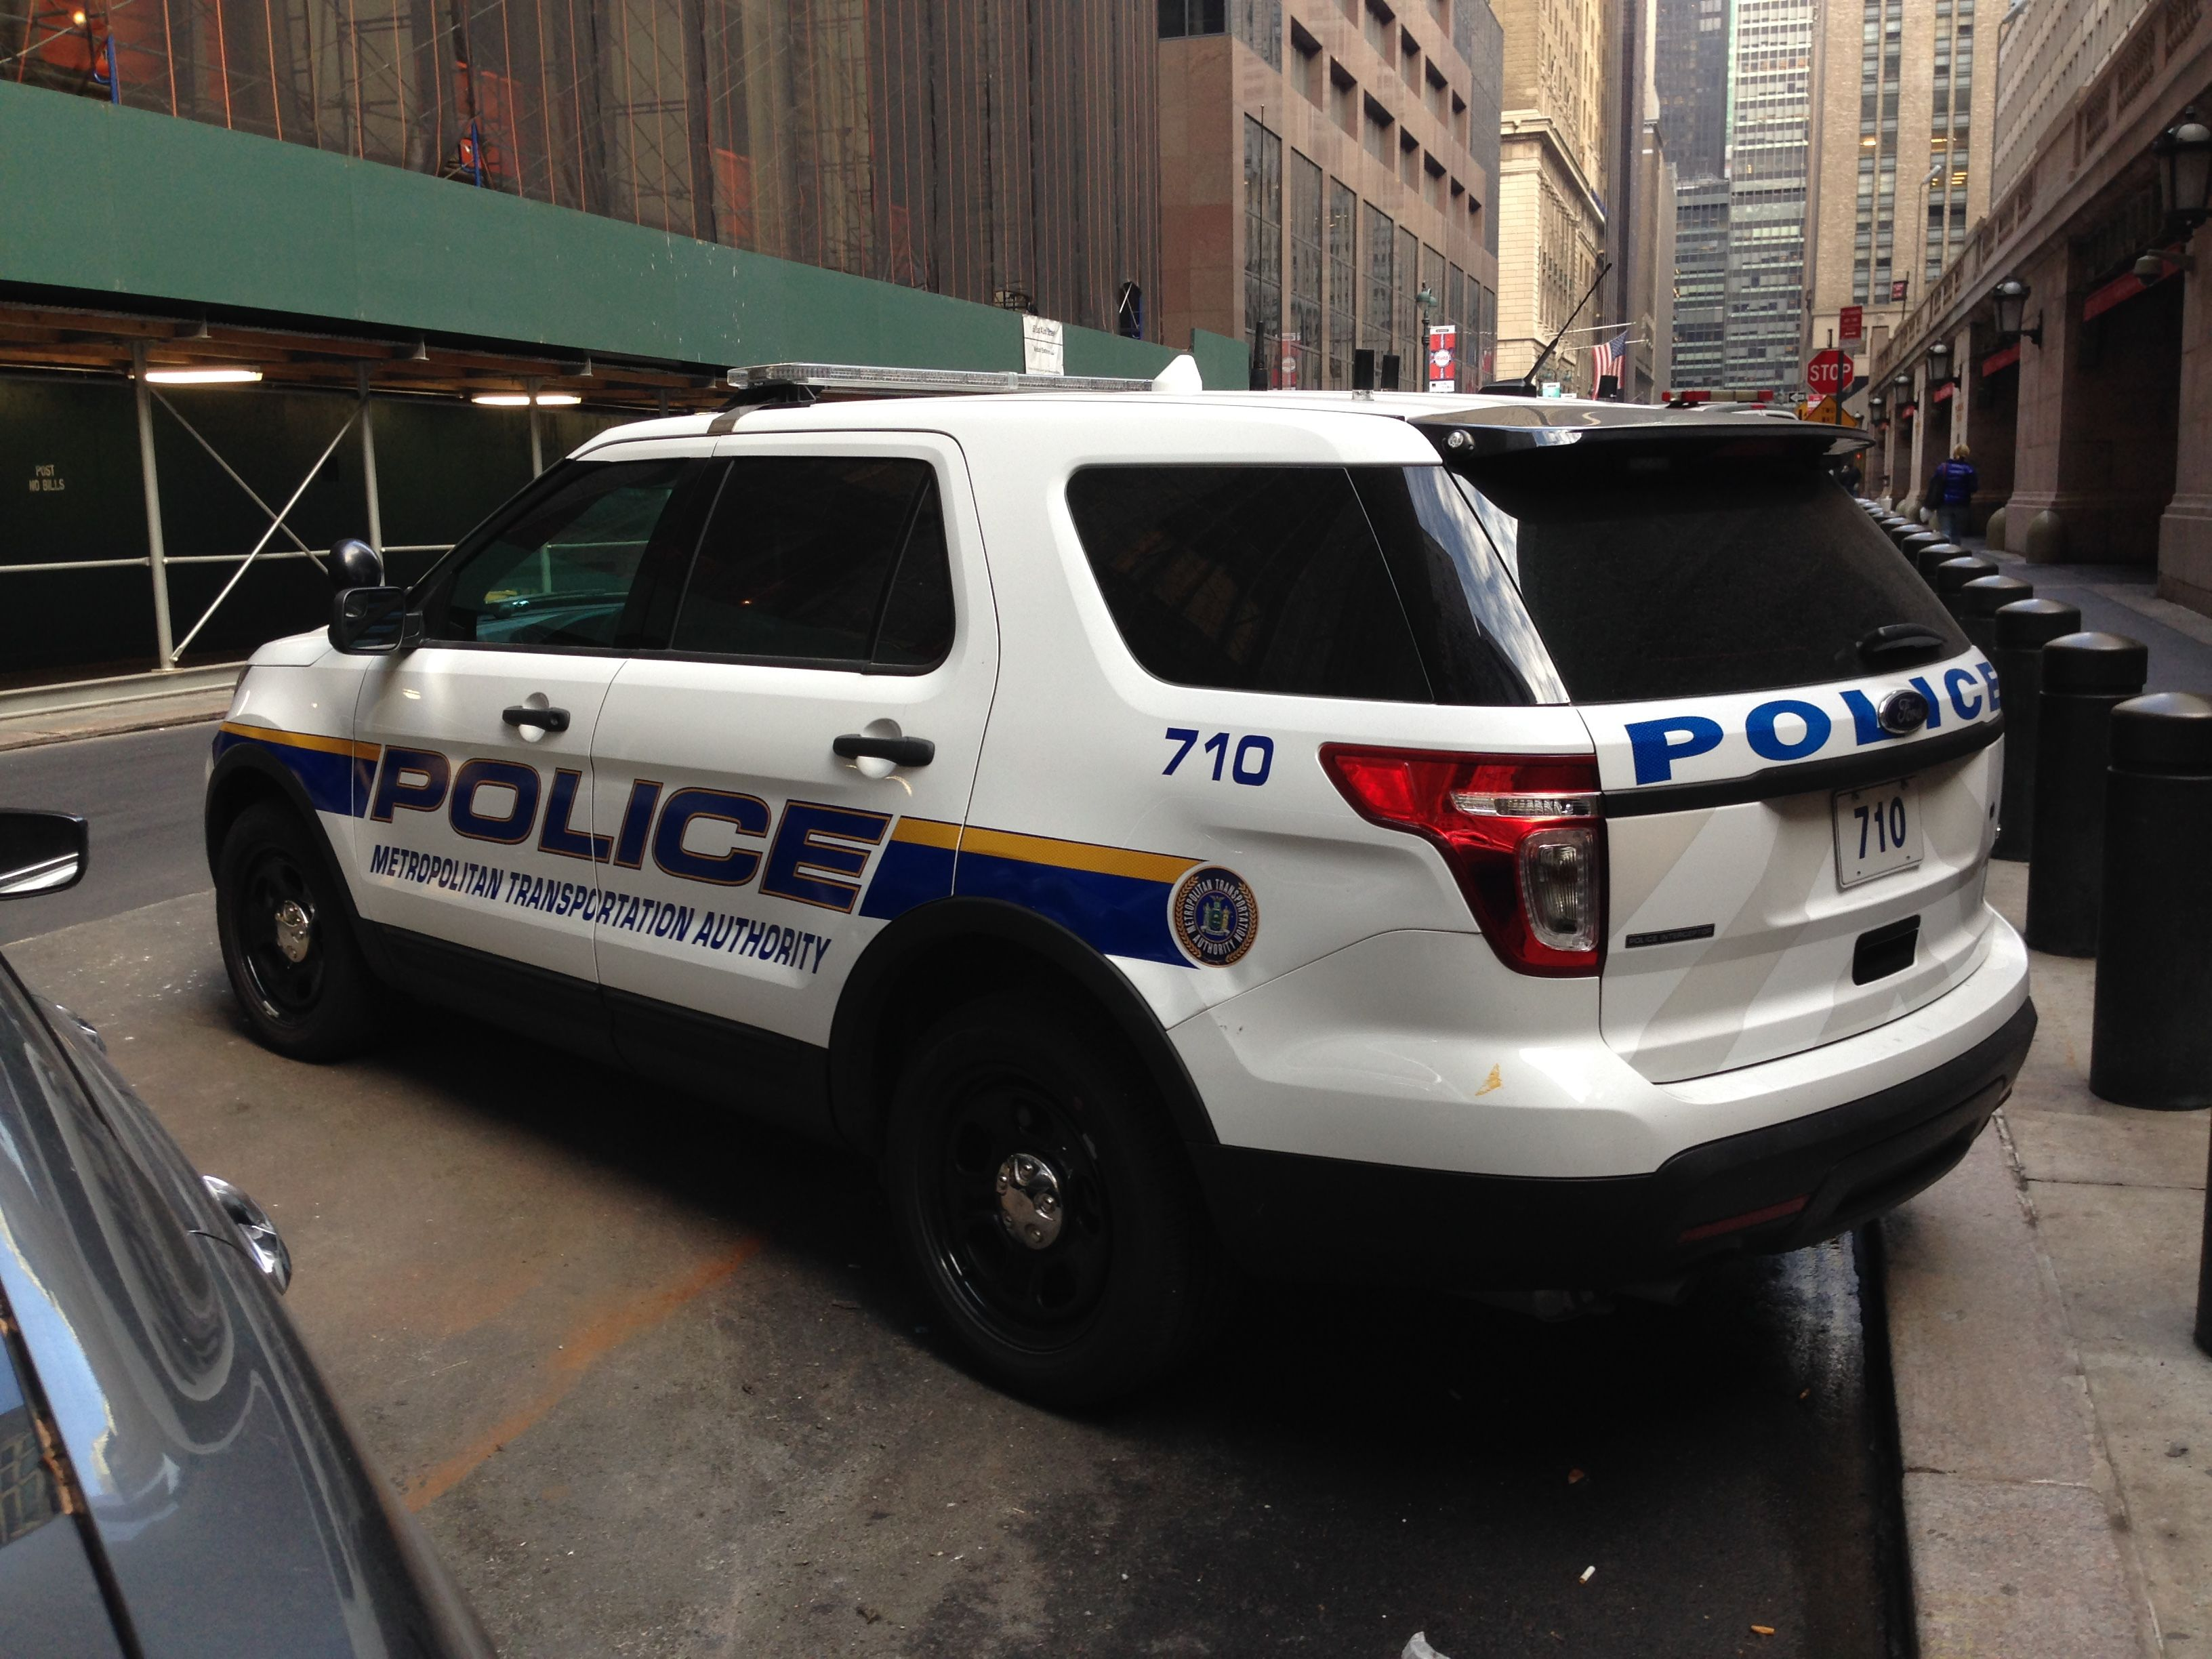 Mta Police Department Ford Interceptor Suv Nyc Ford Police Police Cars Old Police Cars